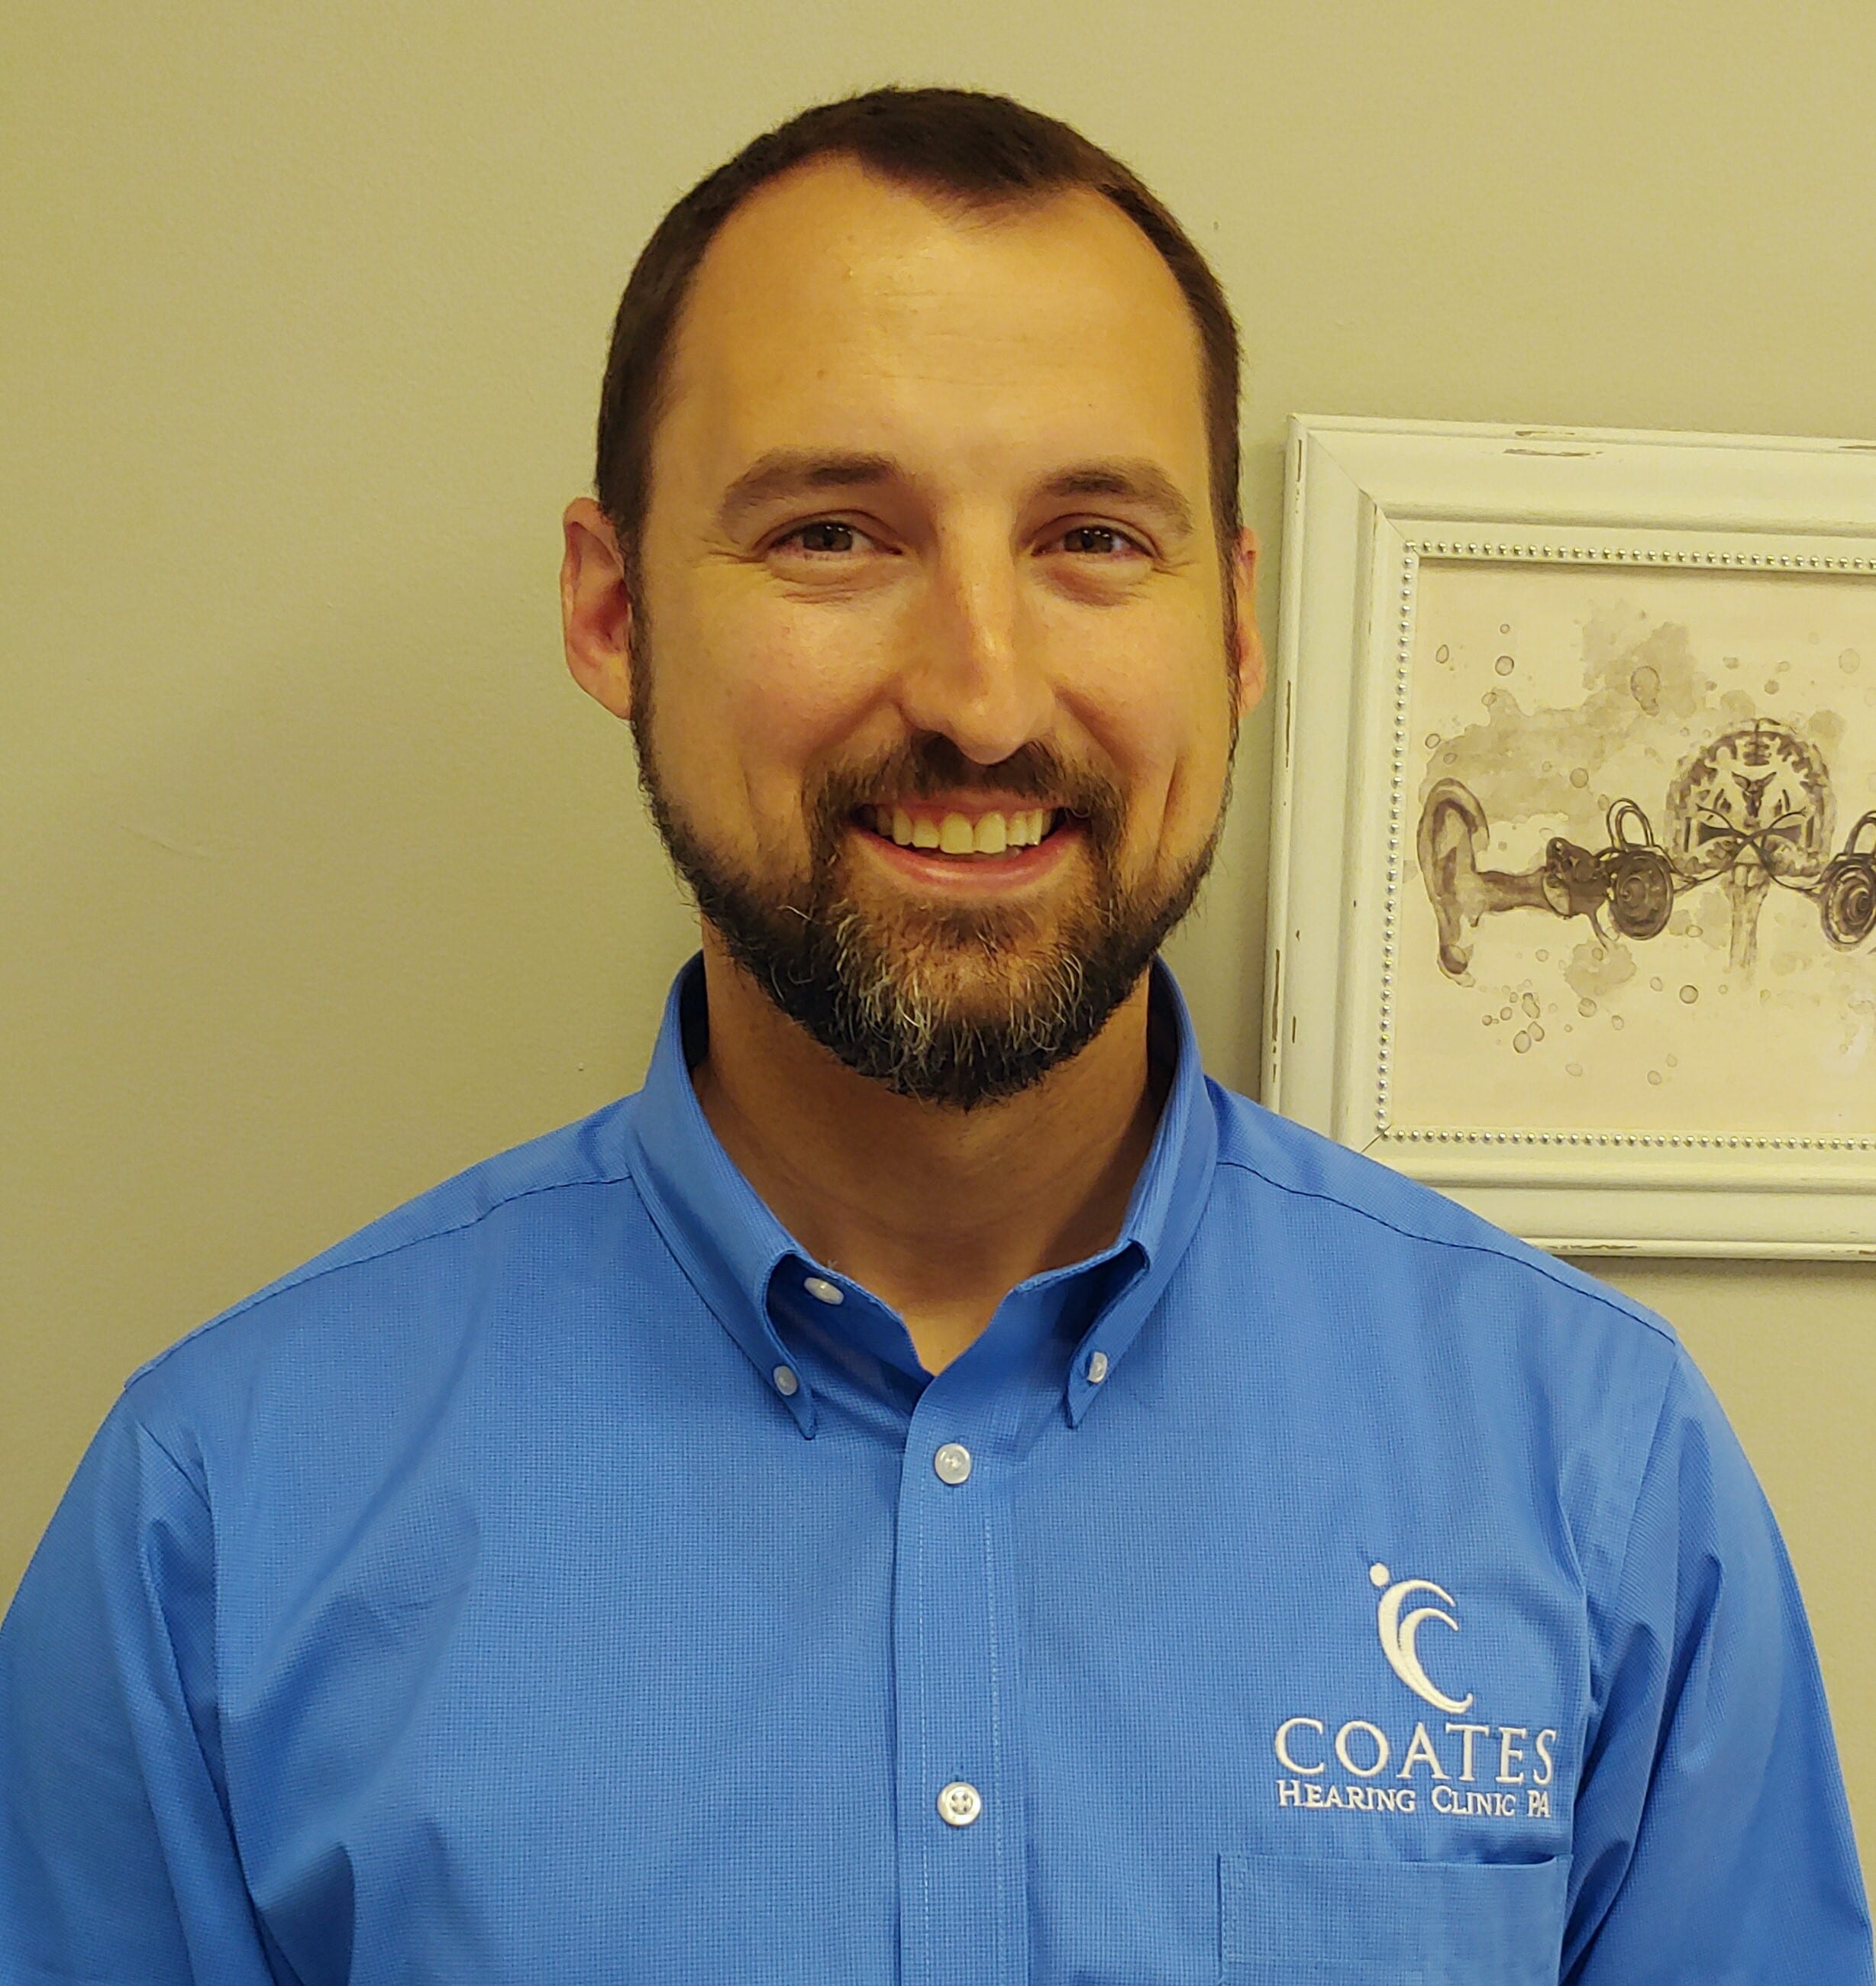 Deacon Jones Smithfield >> Professional Staff | Coates Hearing Clinic, PA